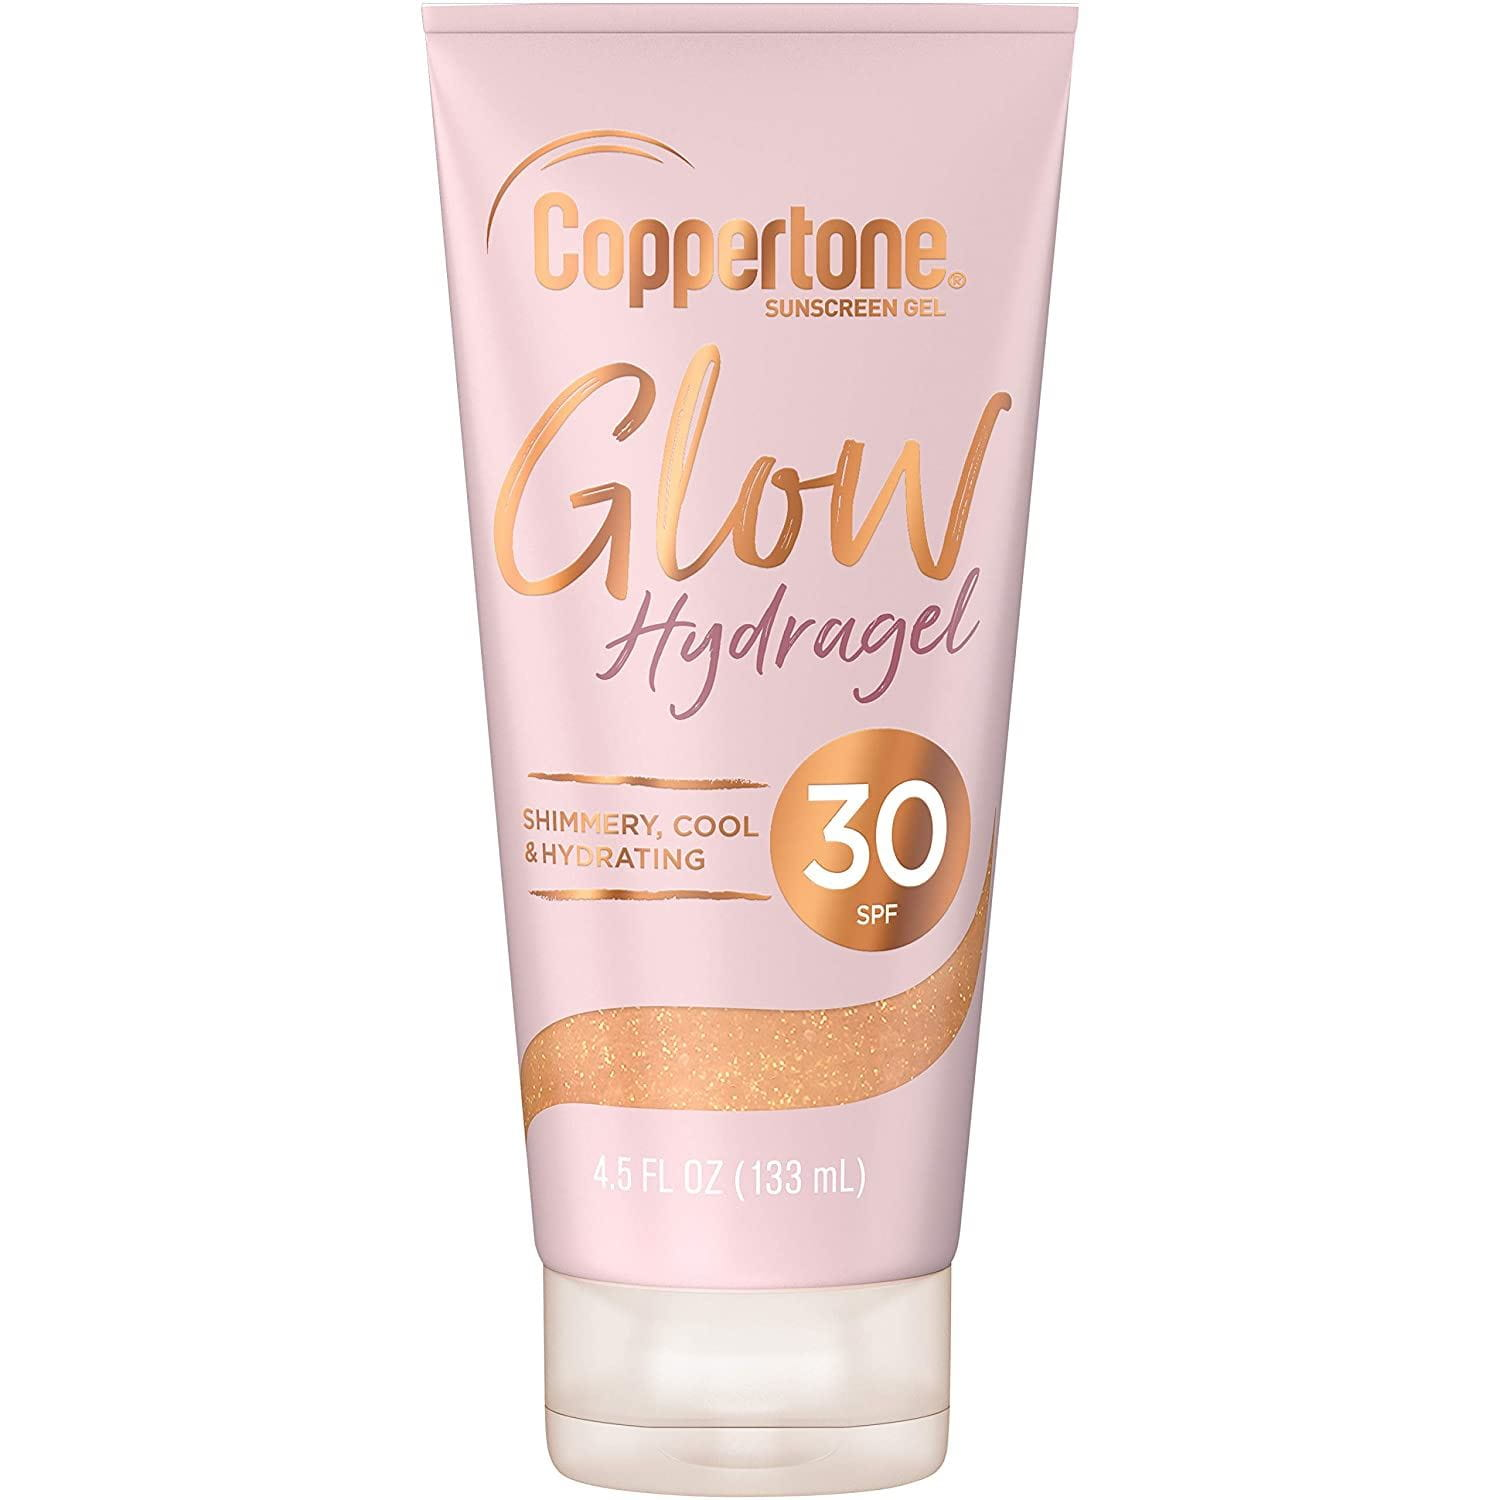 Coppertone Glow Hydragel SPF 30 Sunscreen Lotion with Shimmer